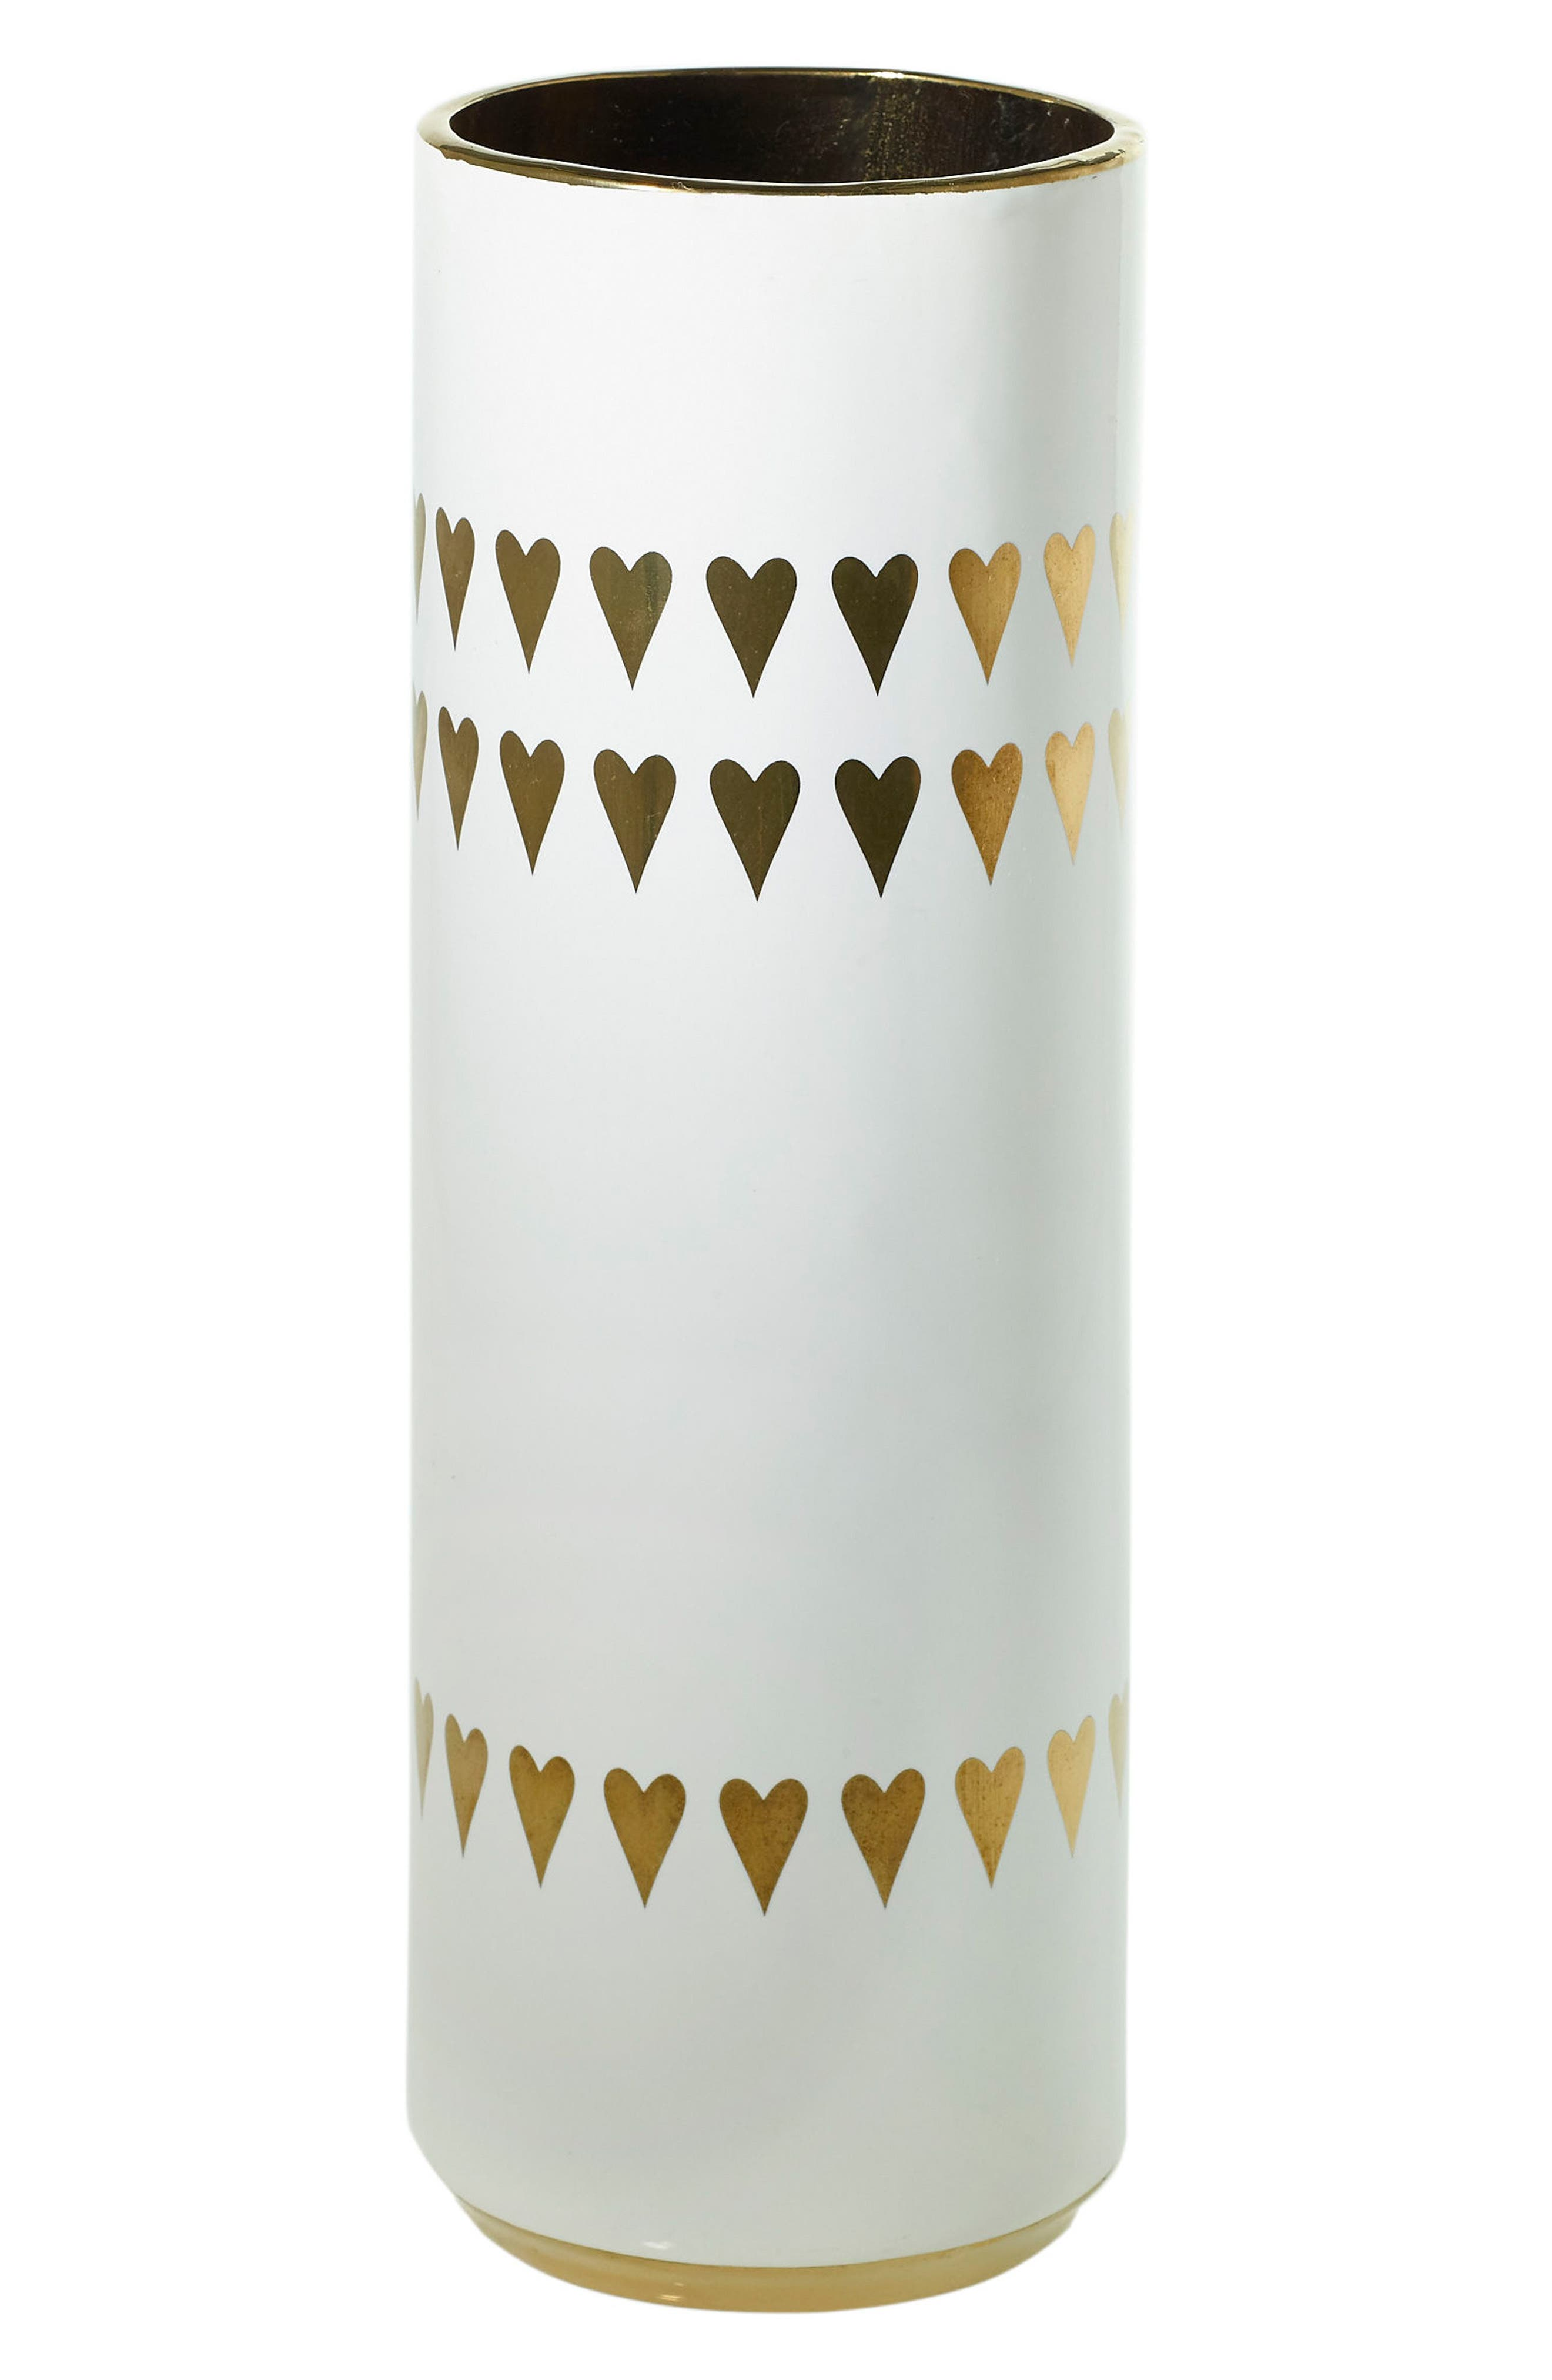 Main Image - Accent Decor Spade Ceramic Vase